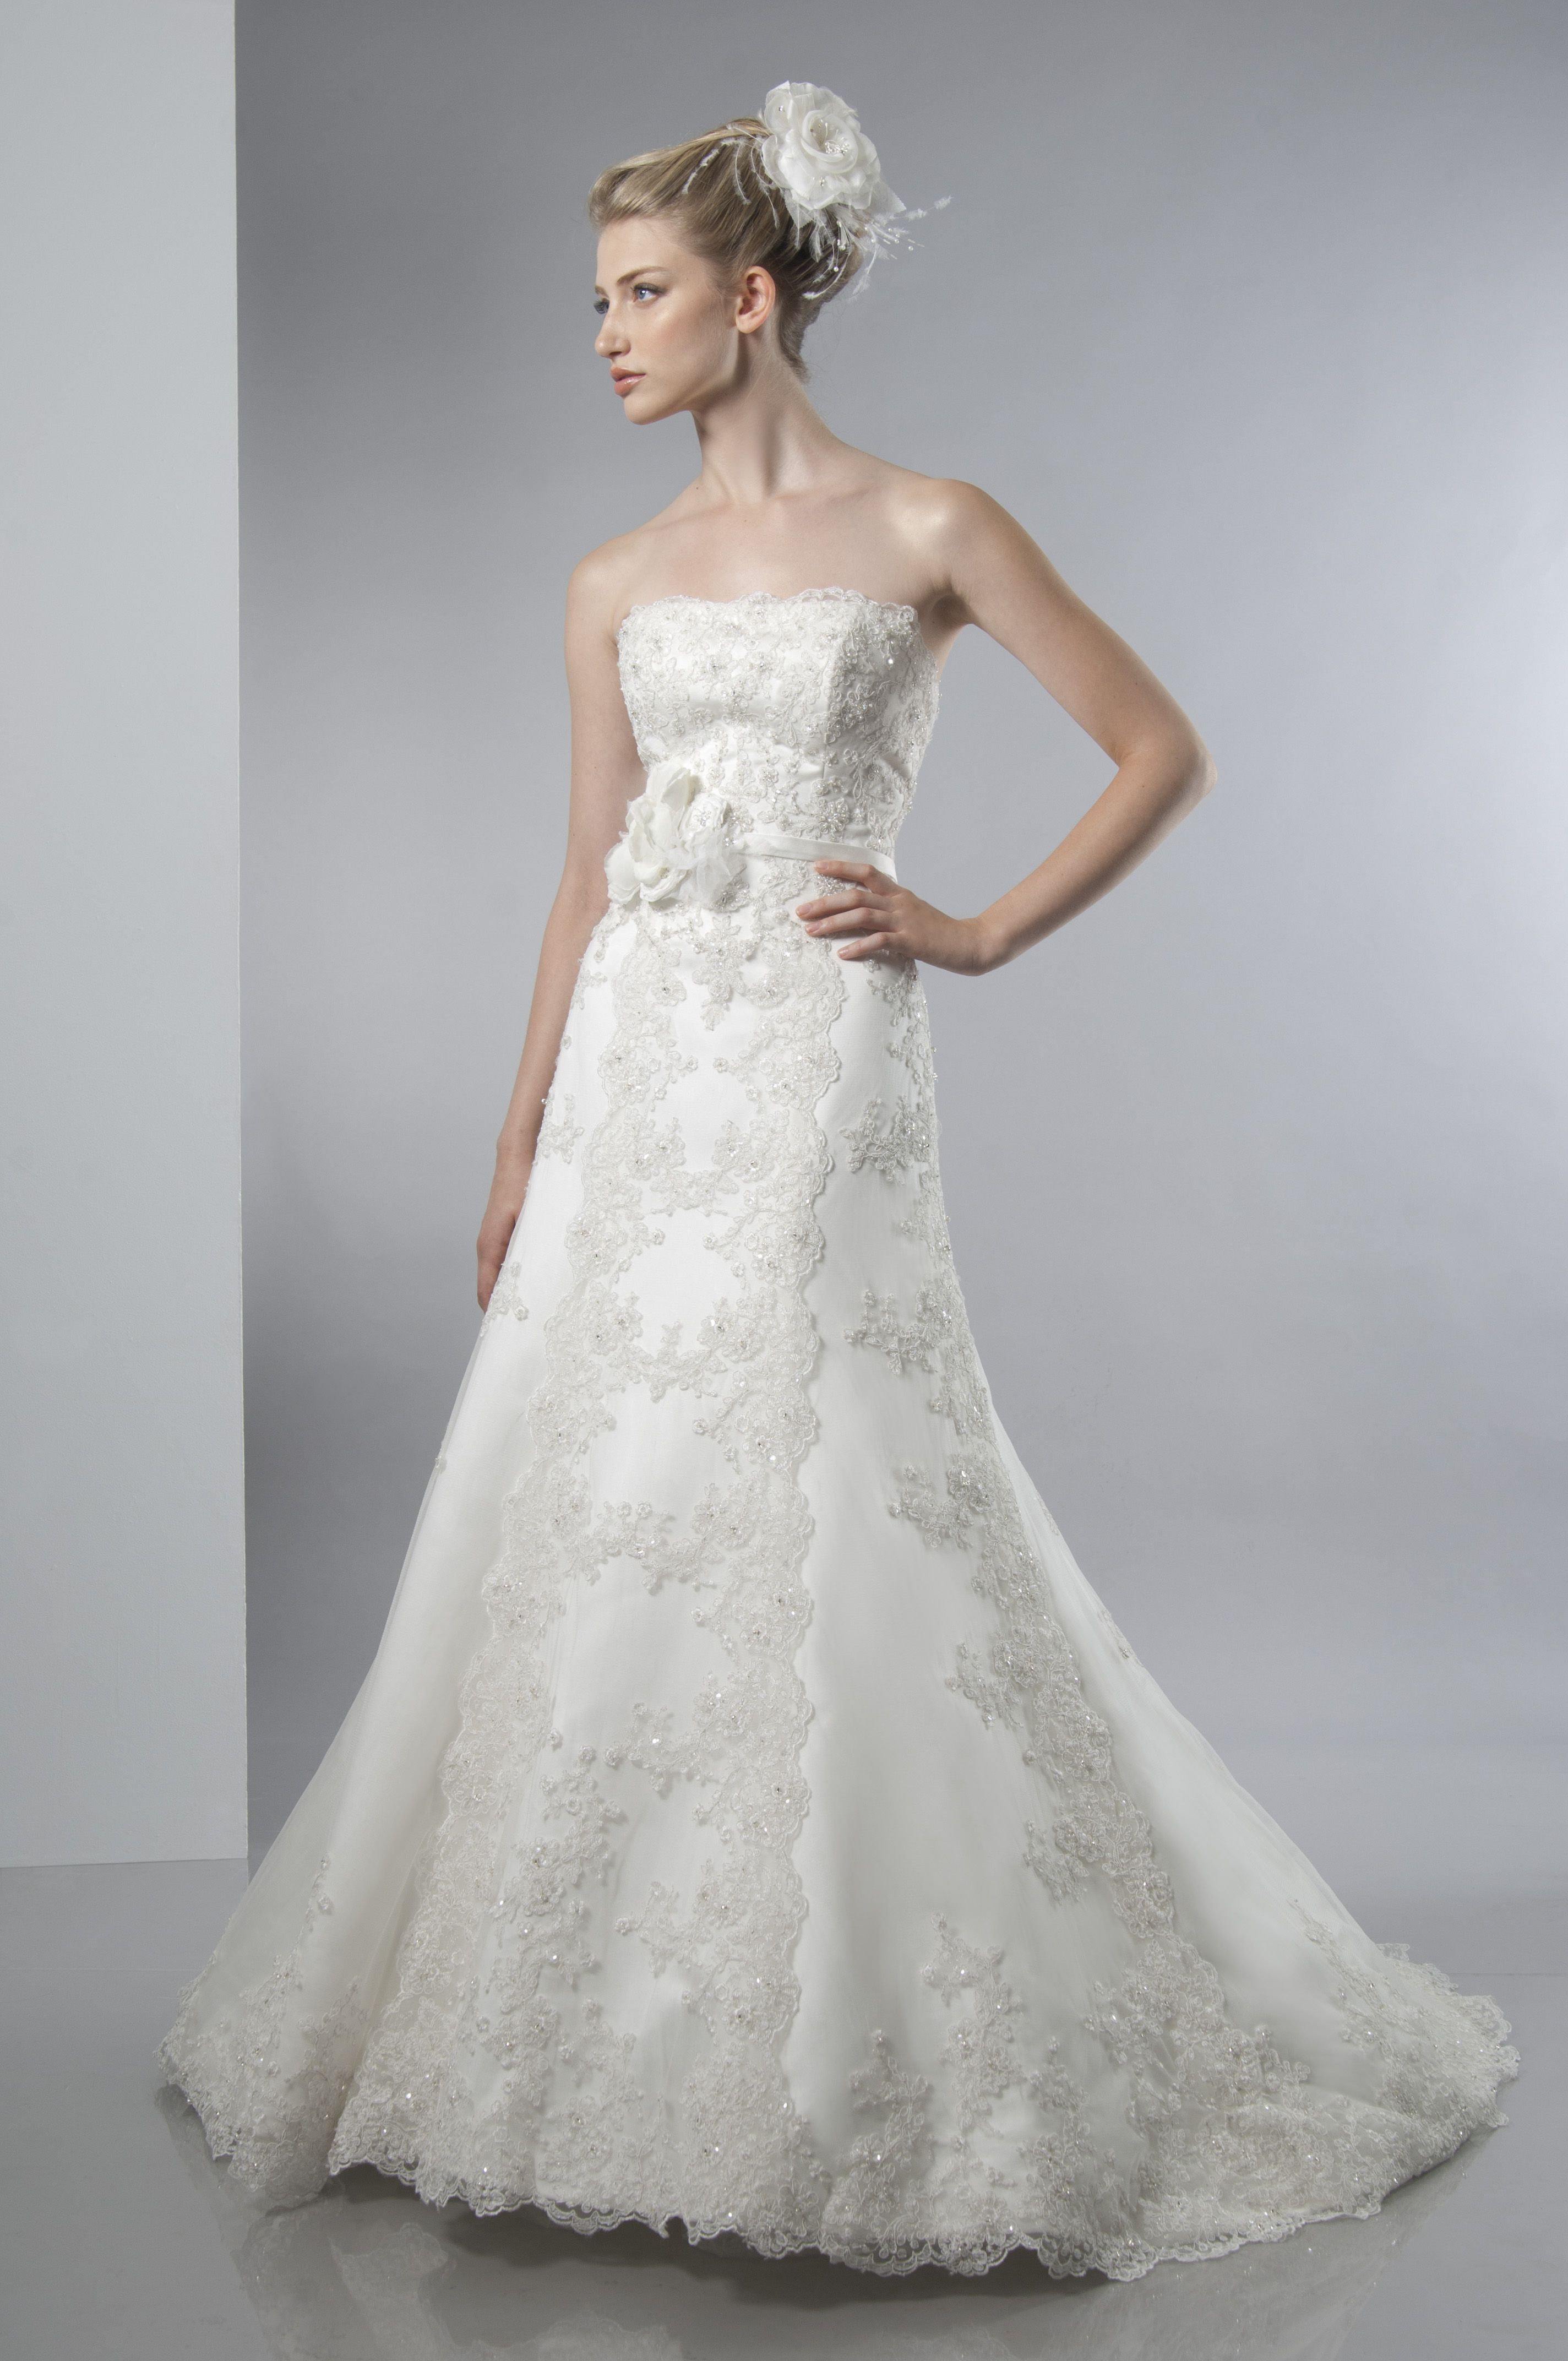 ALFRED SUNG BRIDAL - Individual Style View | Wedding Dresses and ...